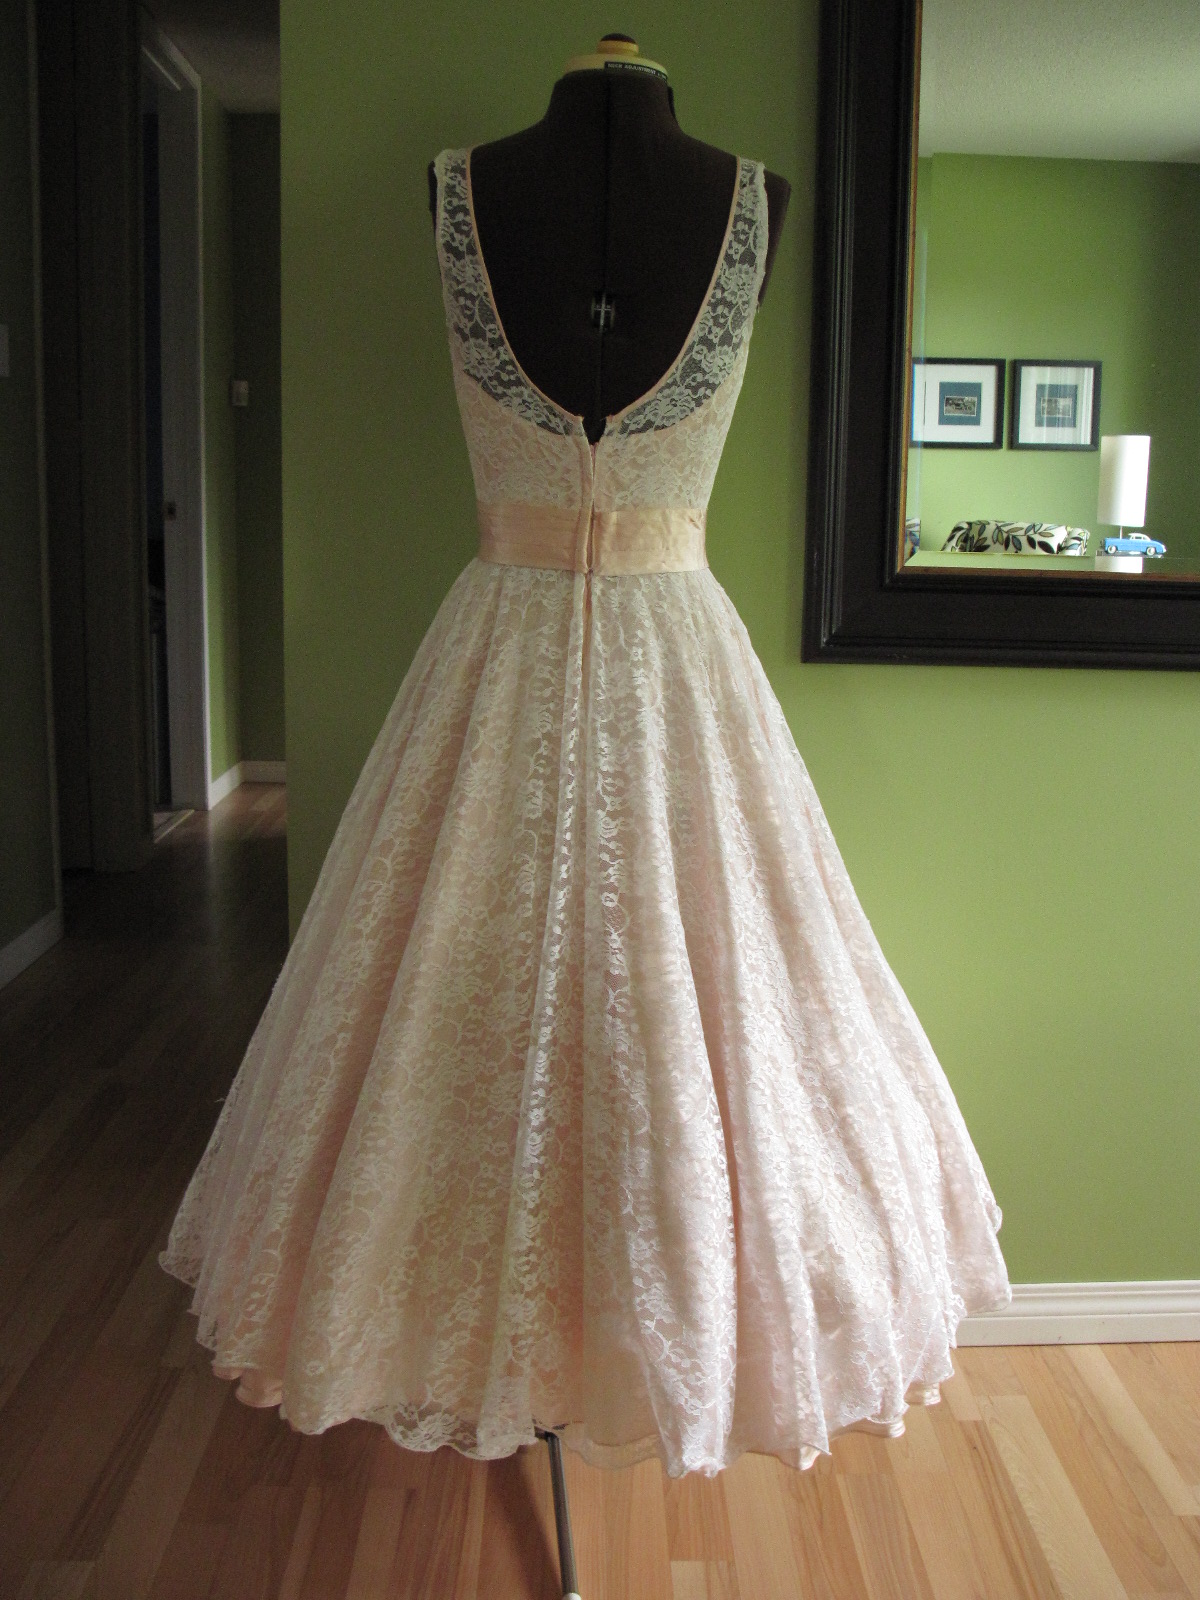 prom dresses | Dress images | Page 373